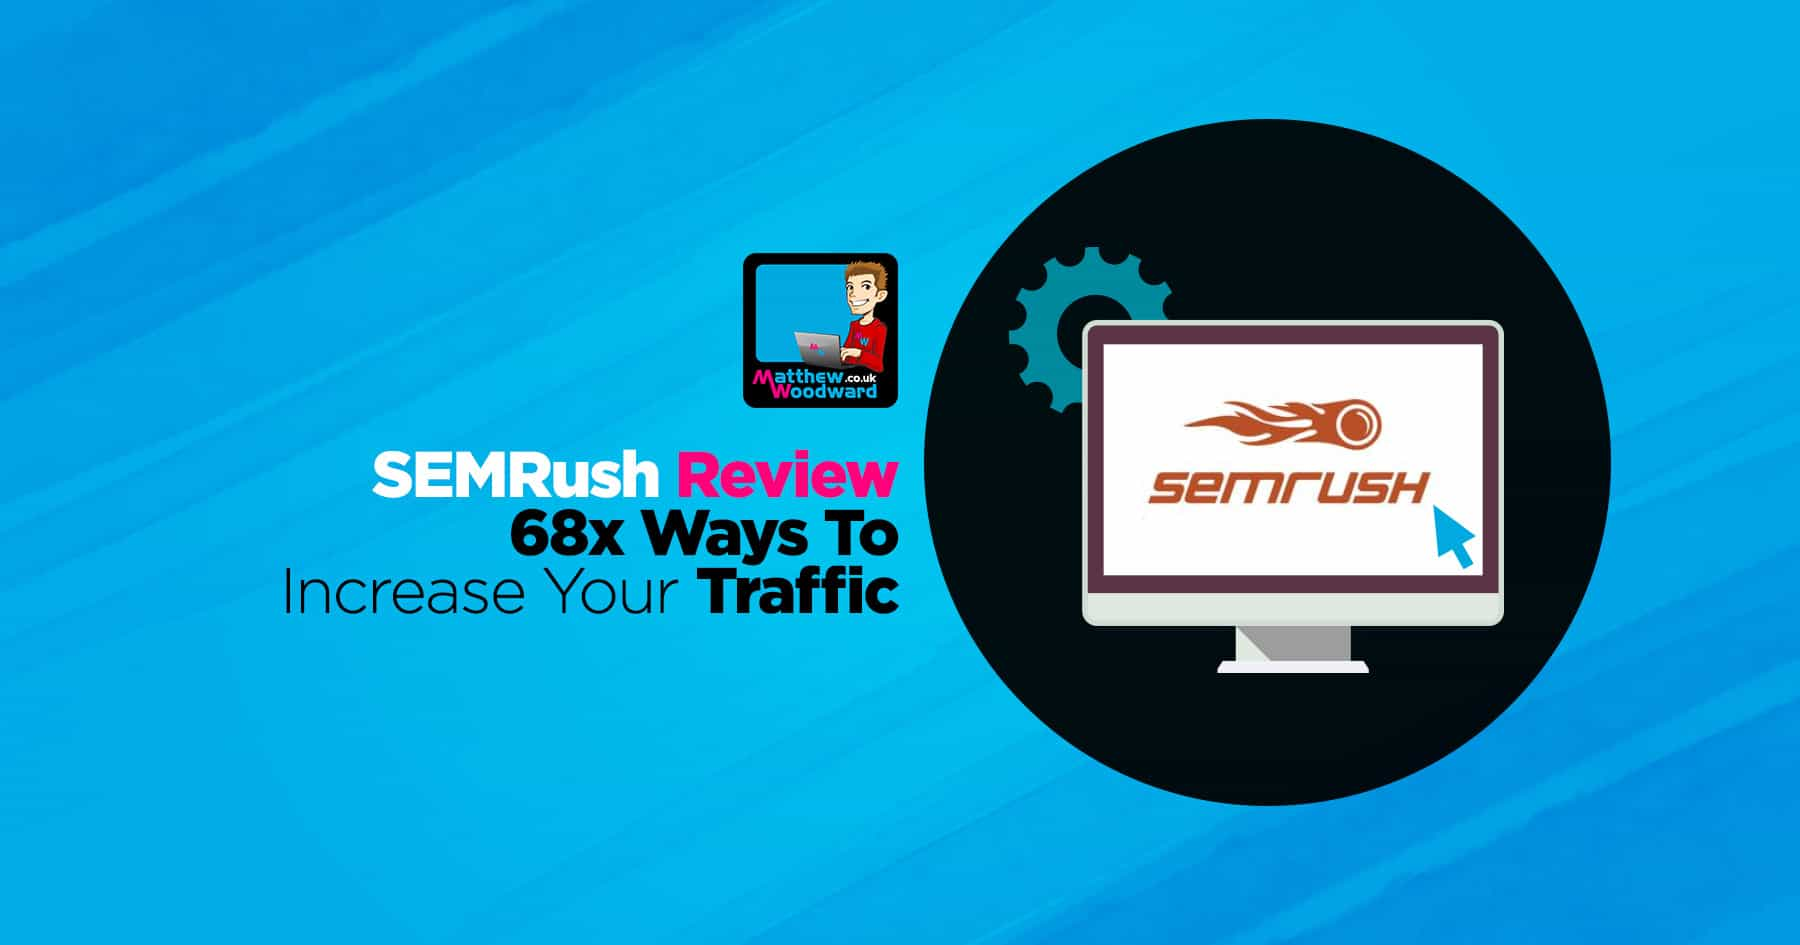 Seo Software  Semrush Outlet Employee Discount May 2020